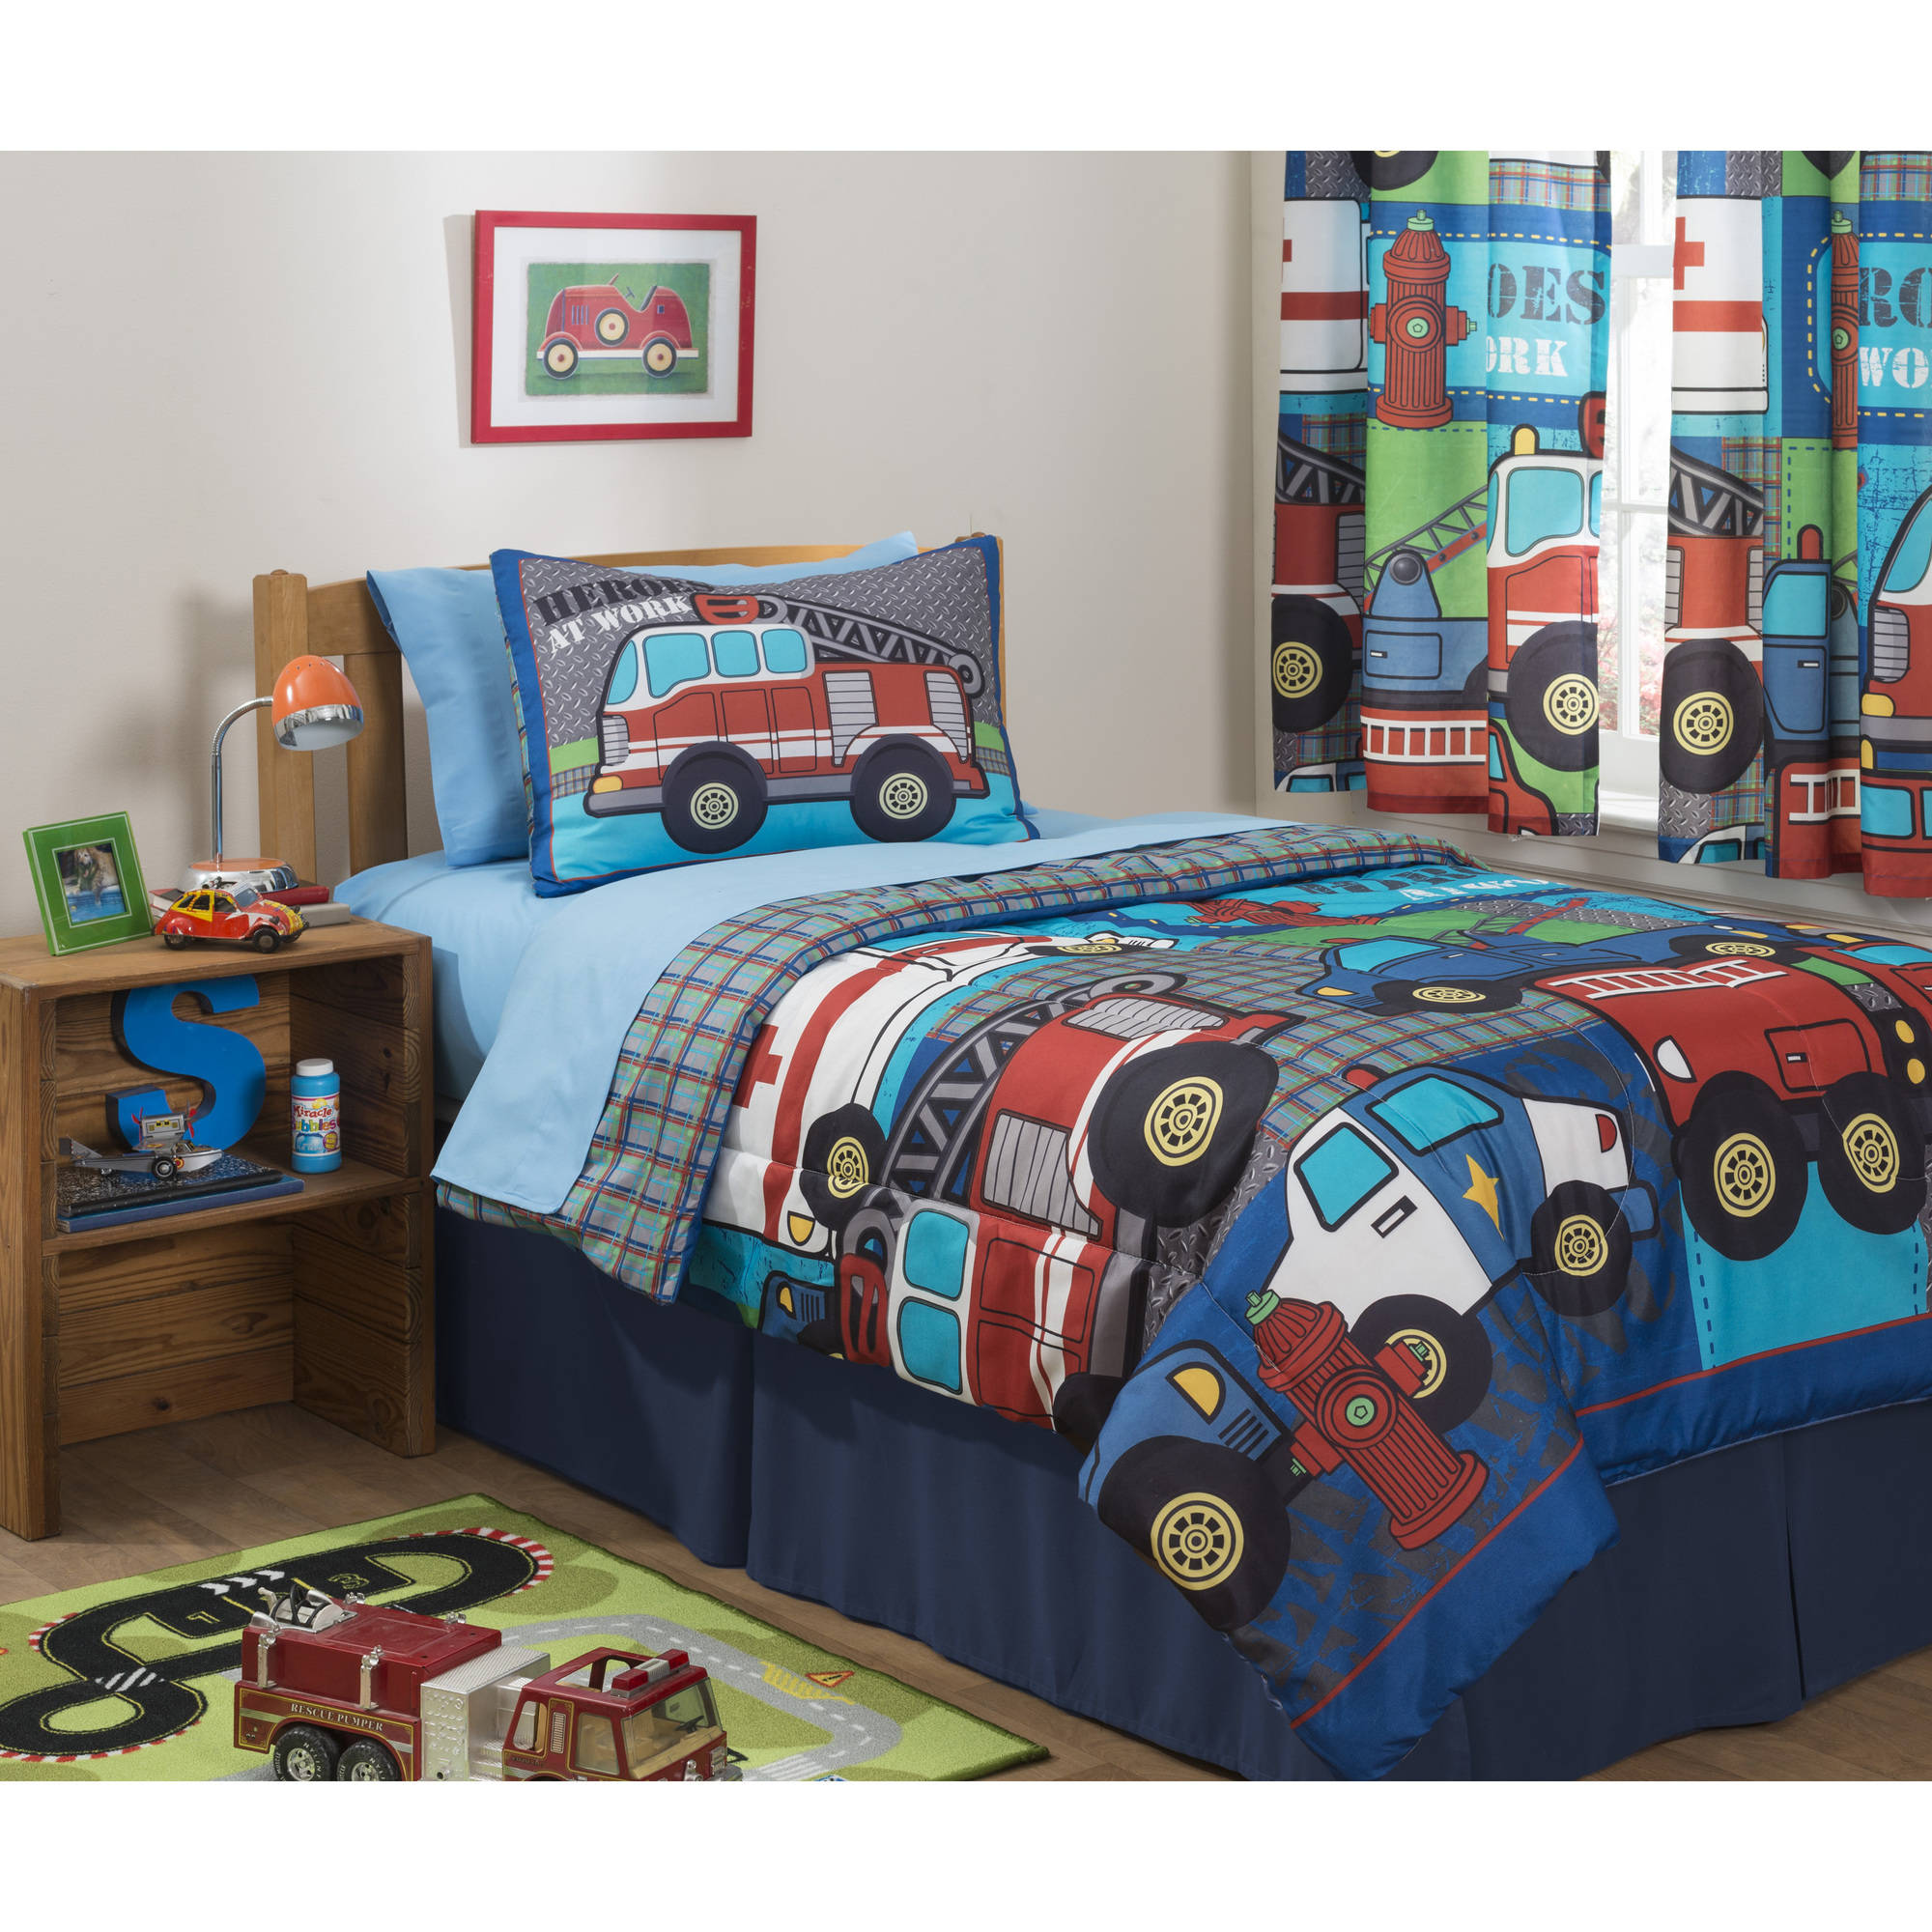 Mainstays Kids Heroes at Work Bed in a Bag Bedding Set